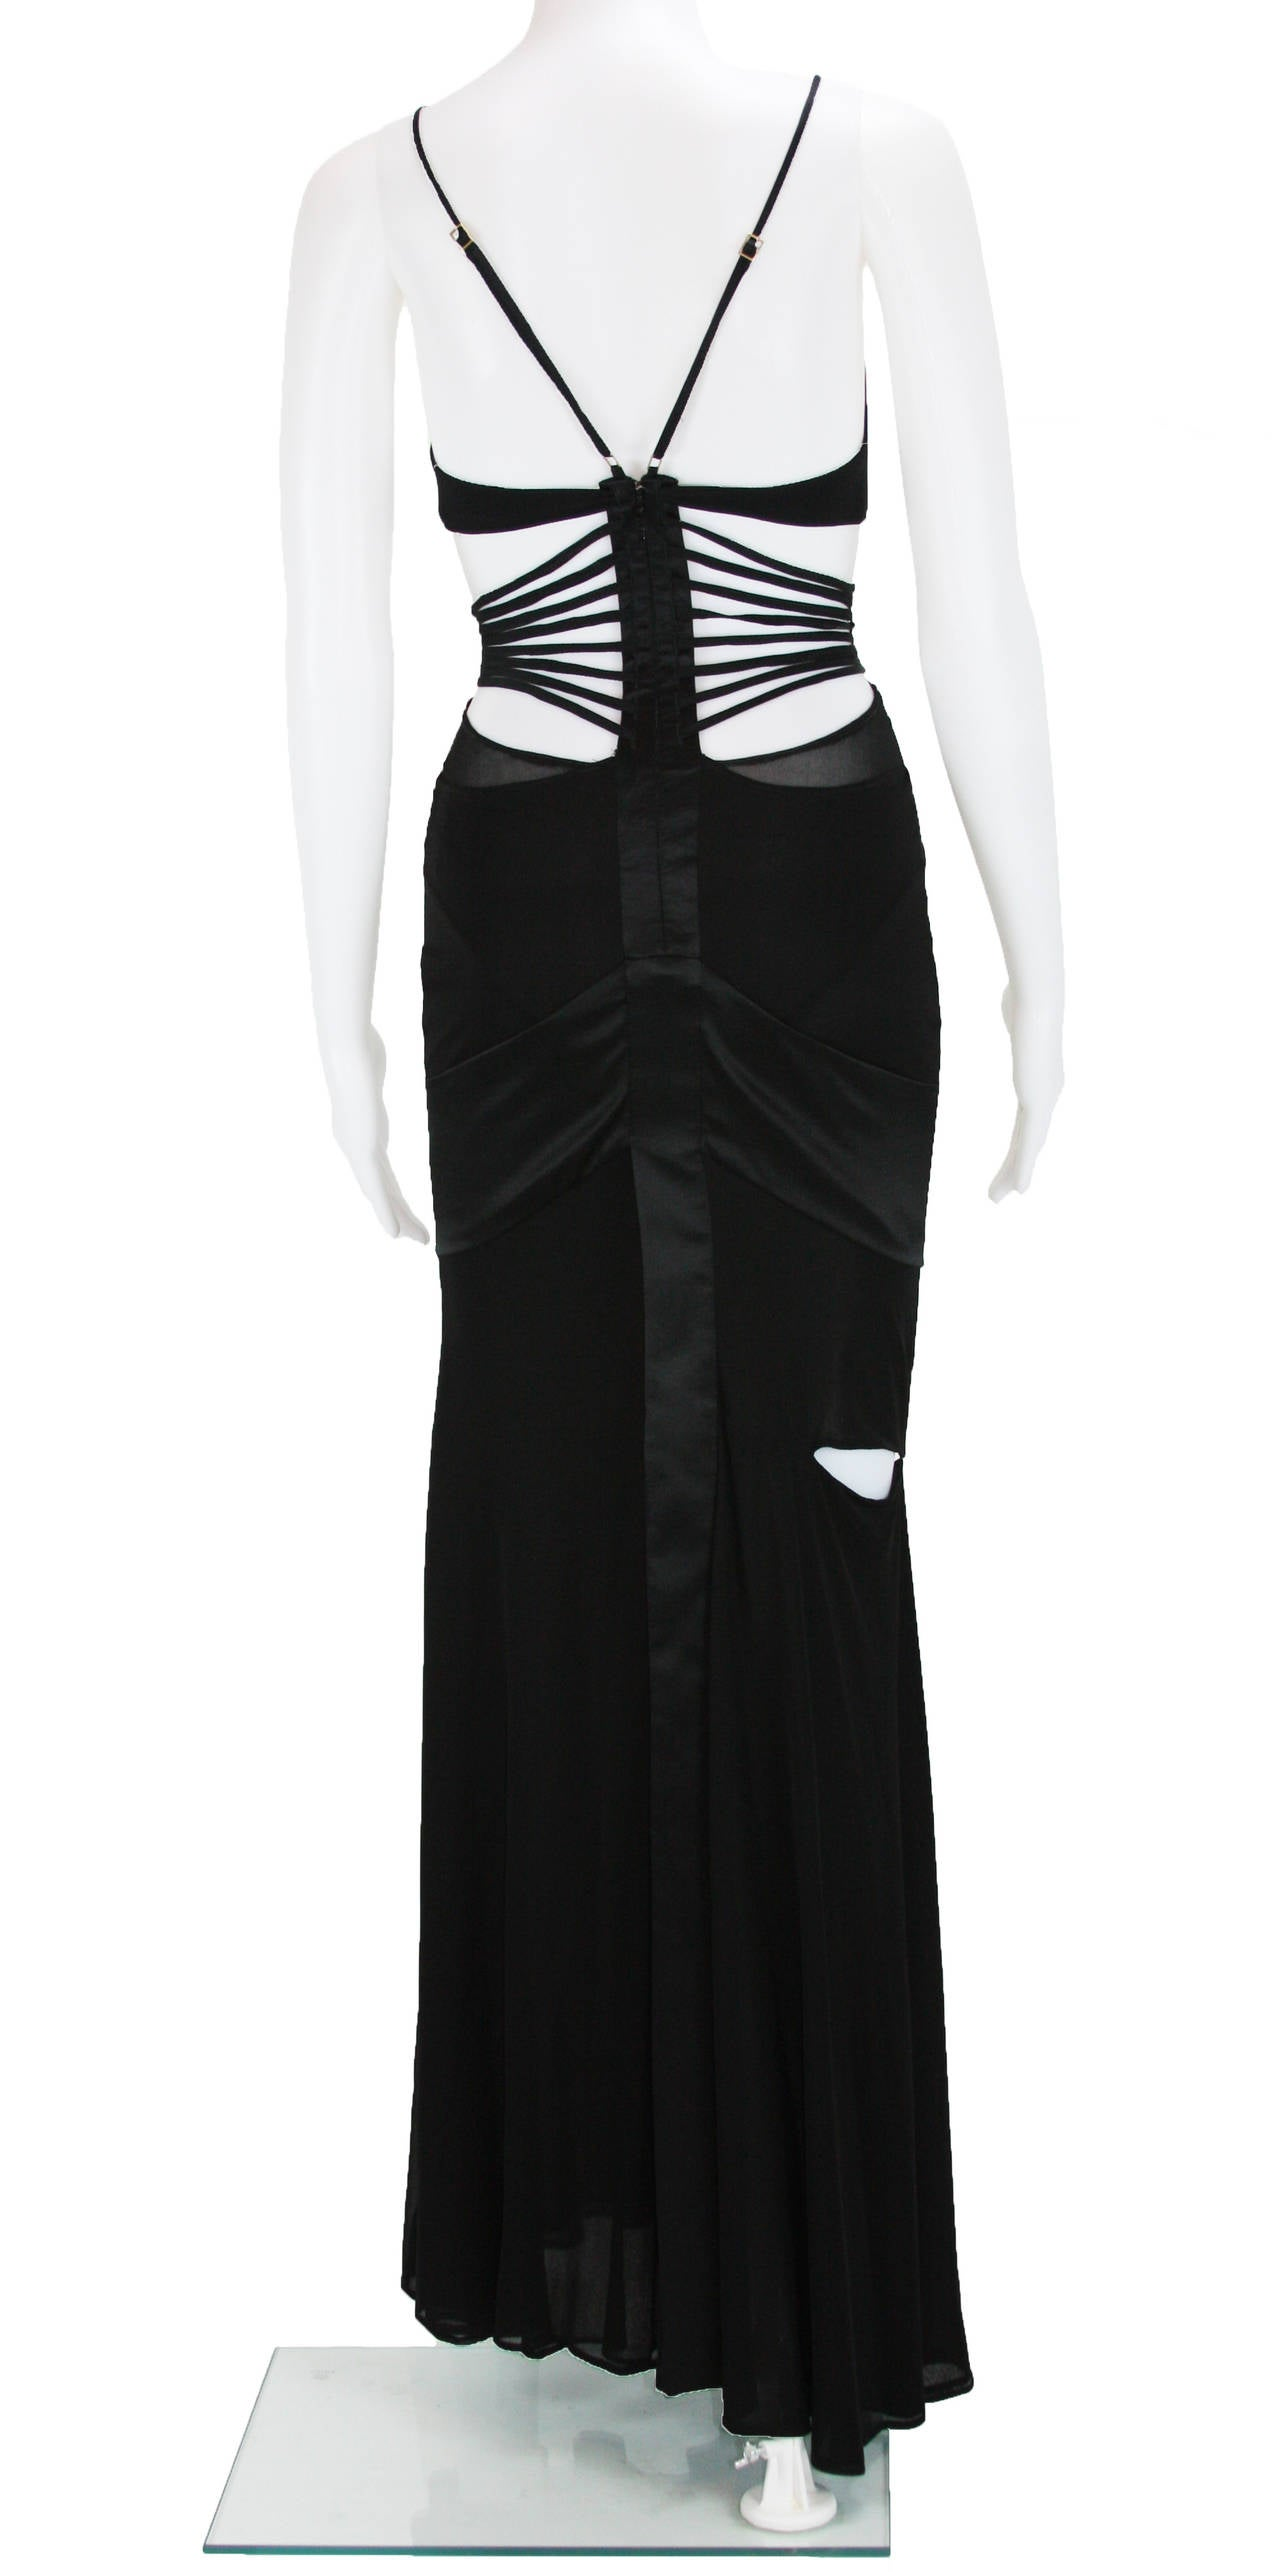 2003 Tom Ford for Gucci black bandage gown 3